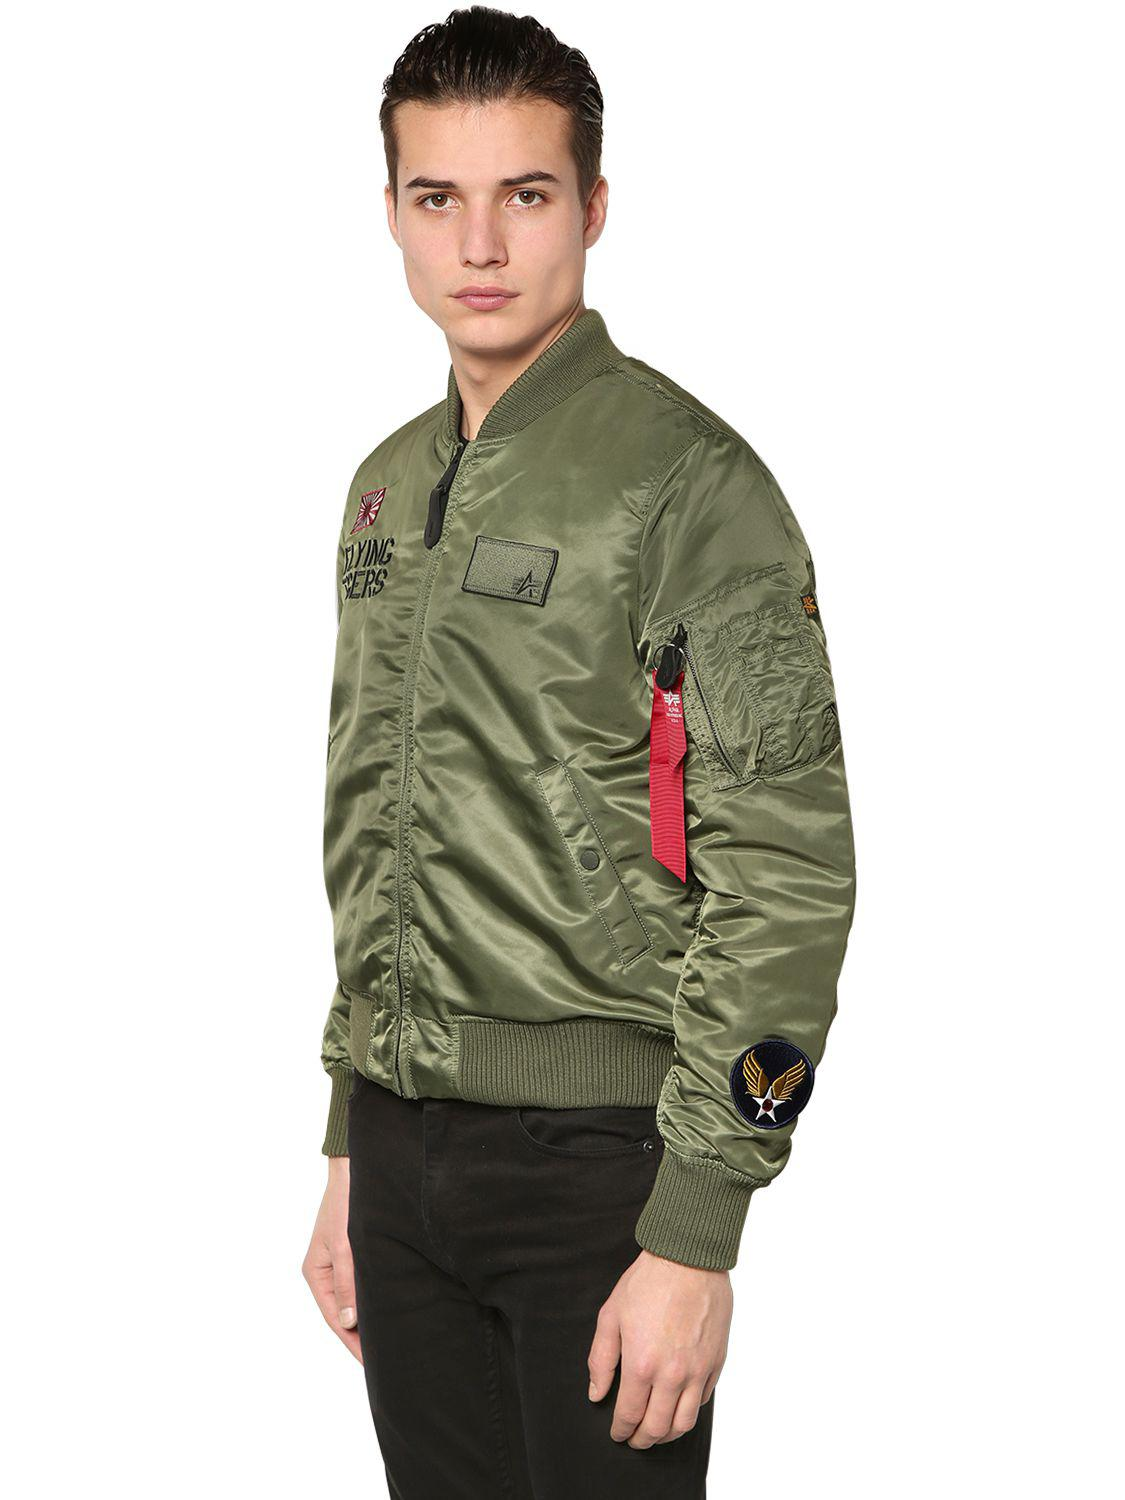 21d0b9a08 Alpha Industries Green Ma-1 Vf Flying Tigers Slim Bomber Jacket for men